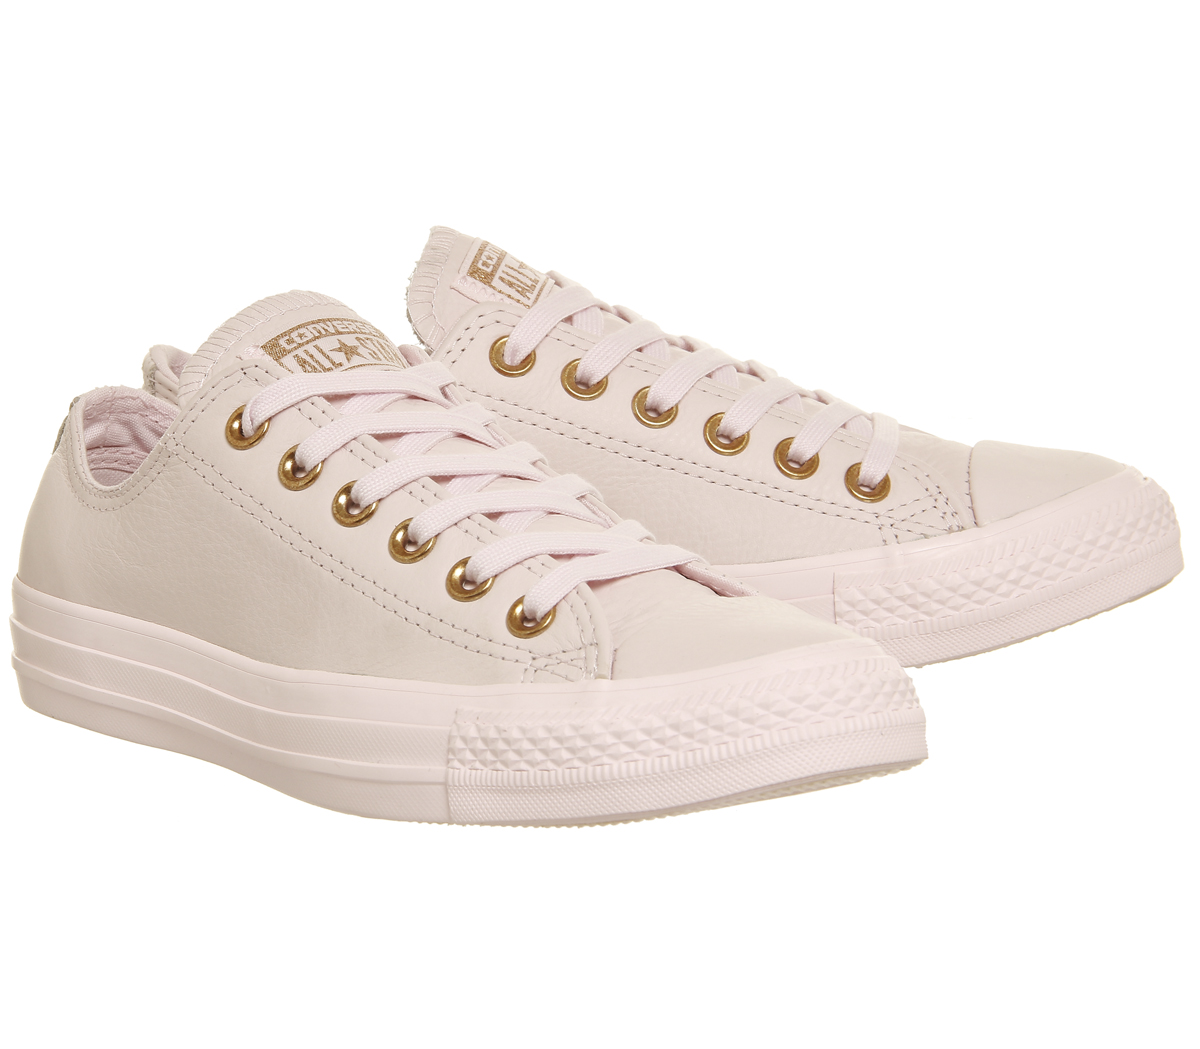 c76cbb0936c961 Sentinel Womens Converse All Star Low Leather ARTIC PINK ROSE GOLD Trainers  Shoes